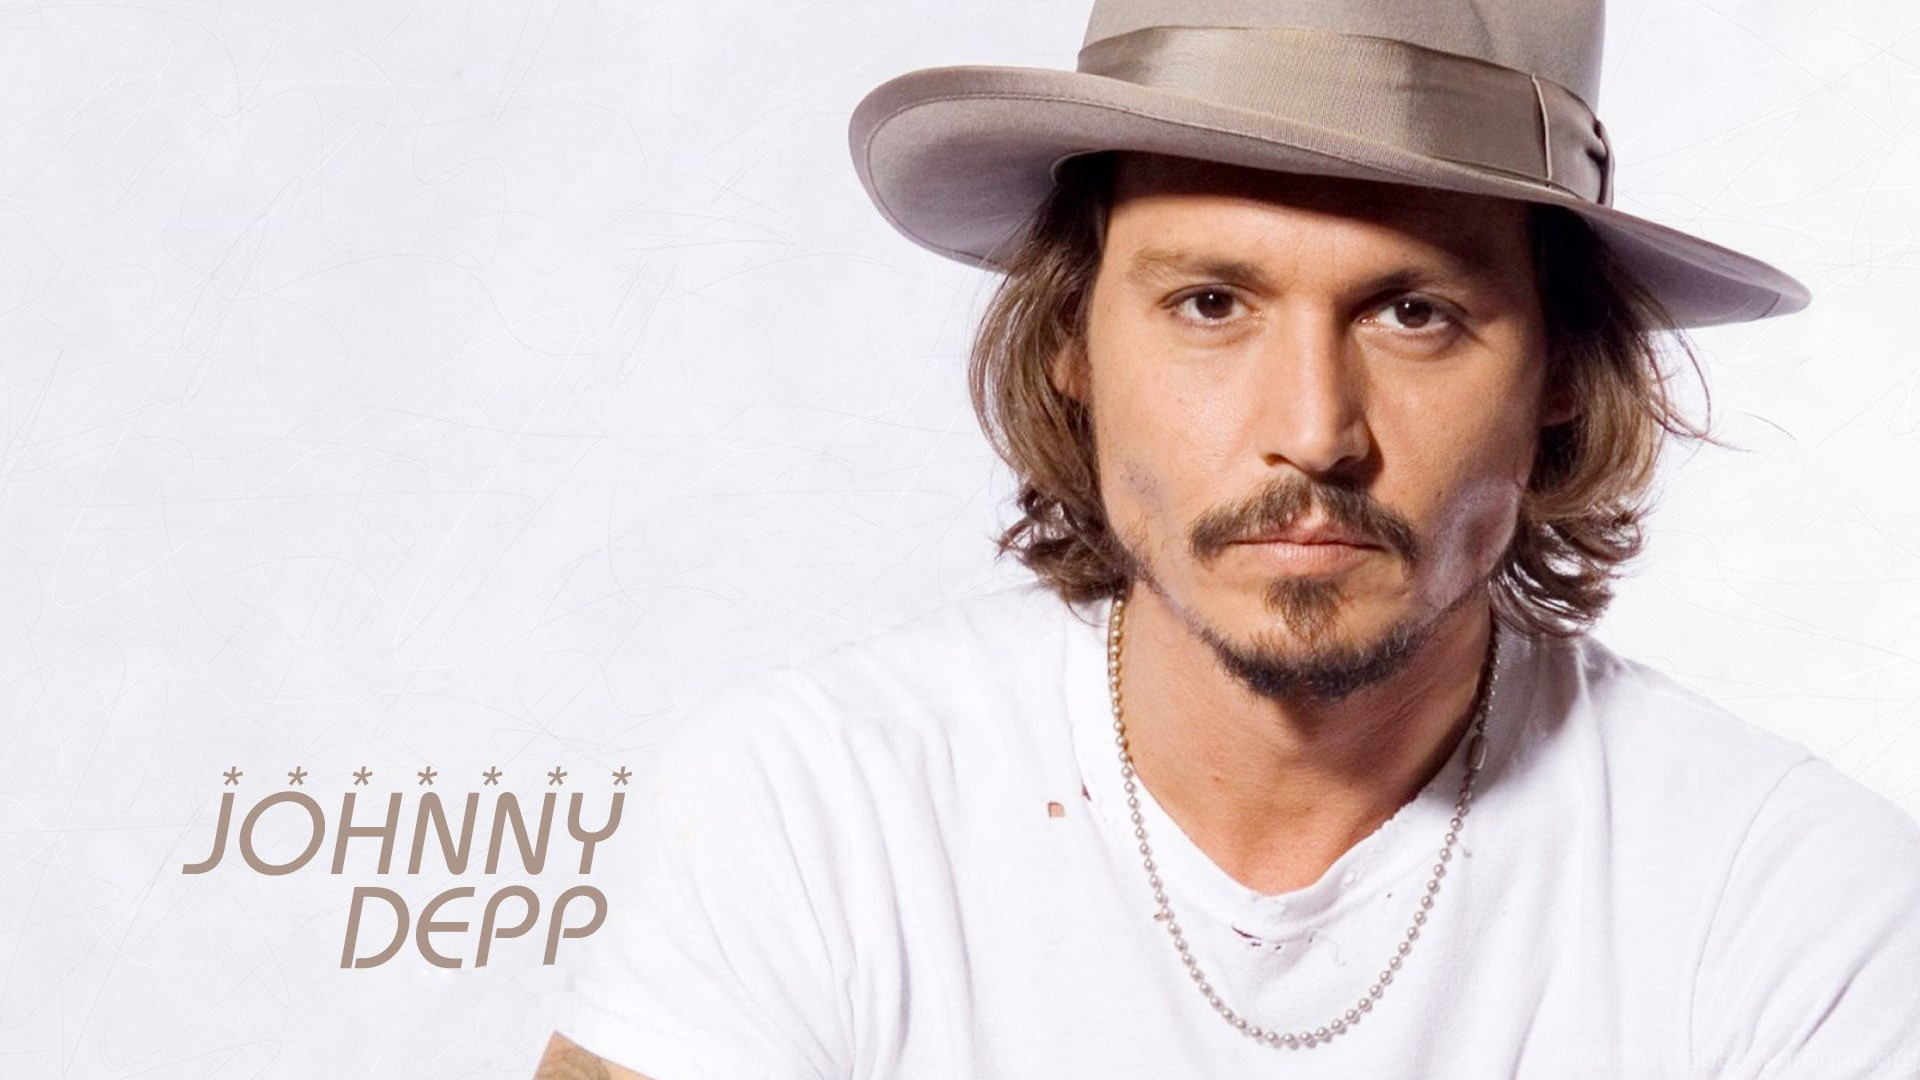 Johnny Depp Hd Images Desktop Background